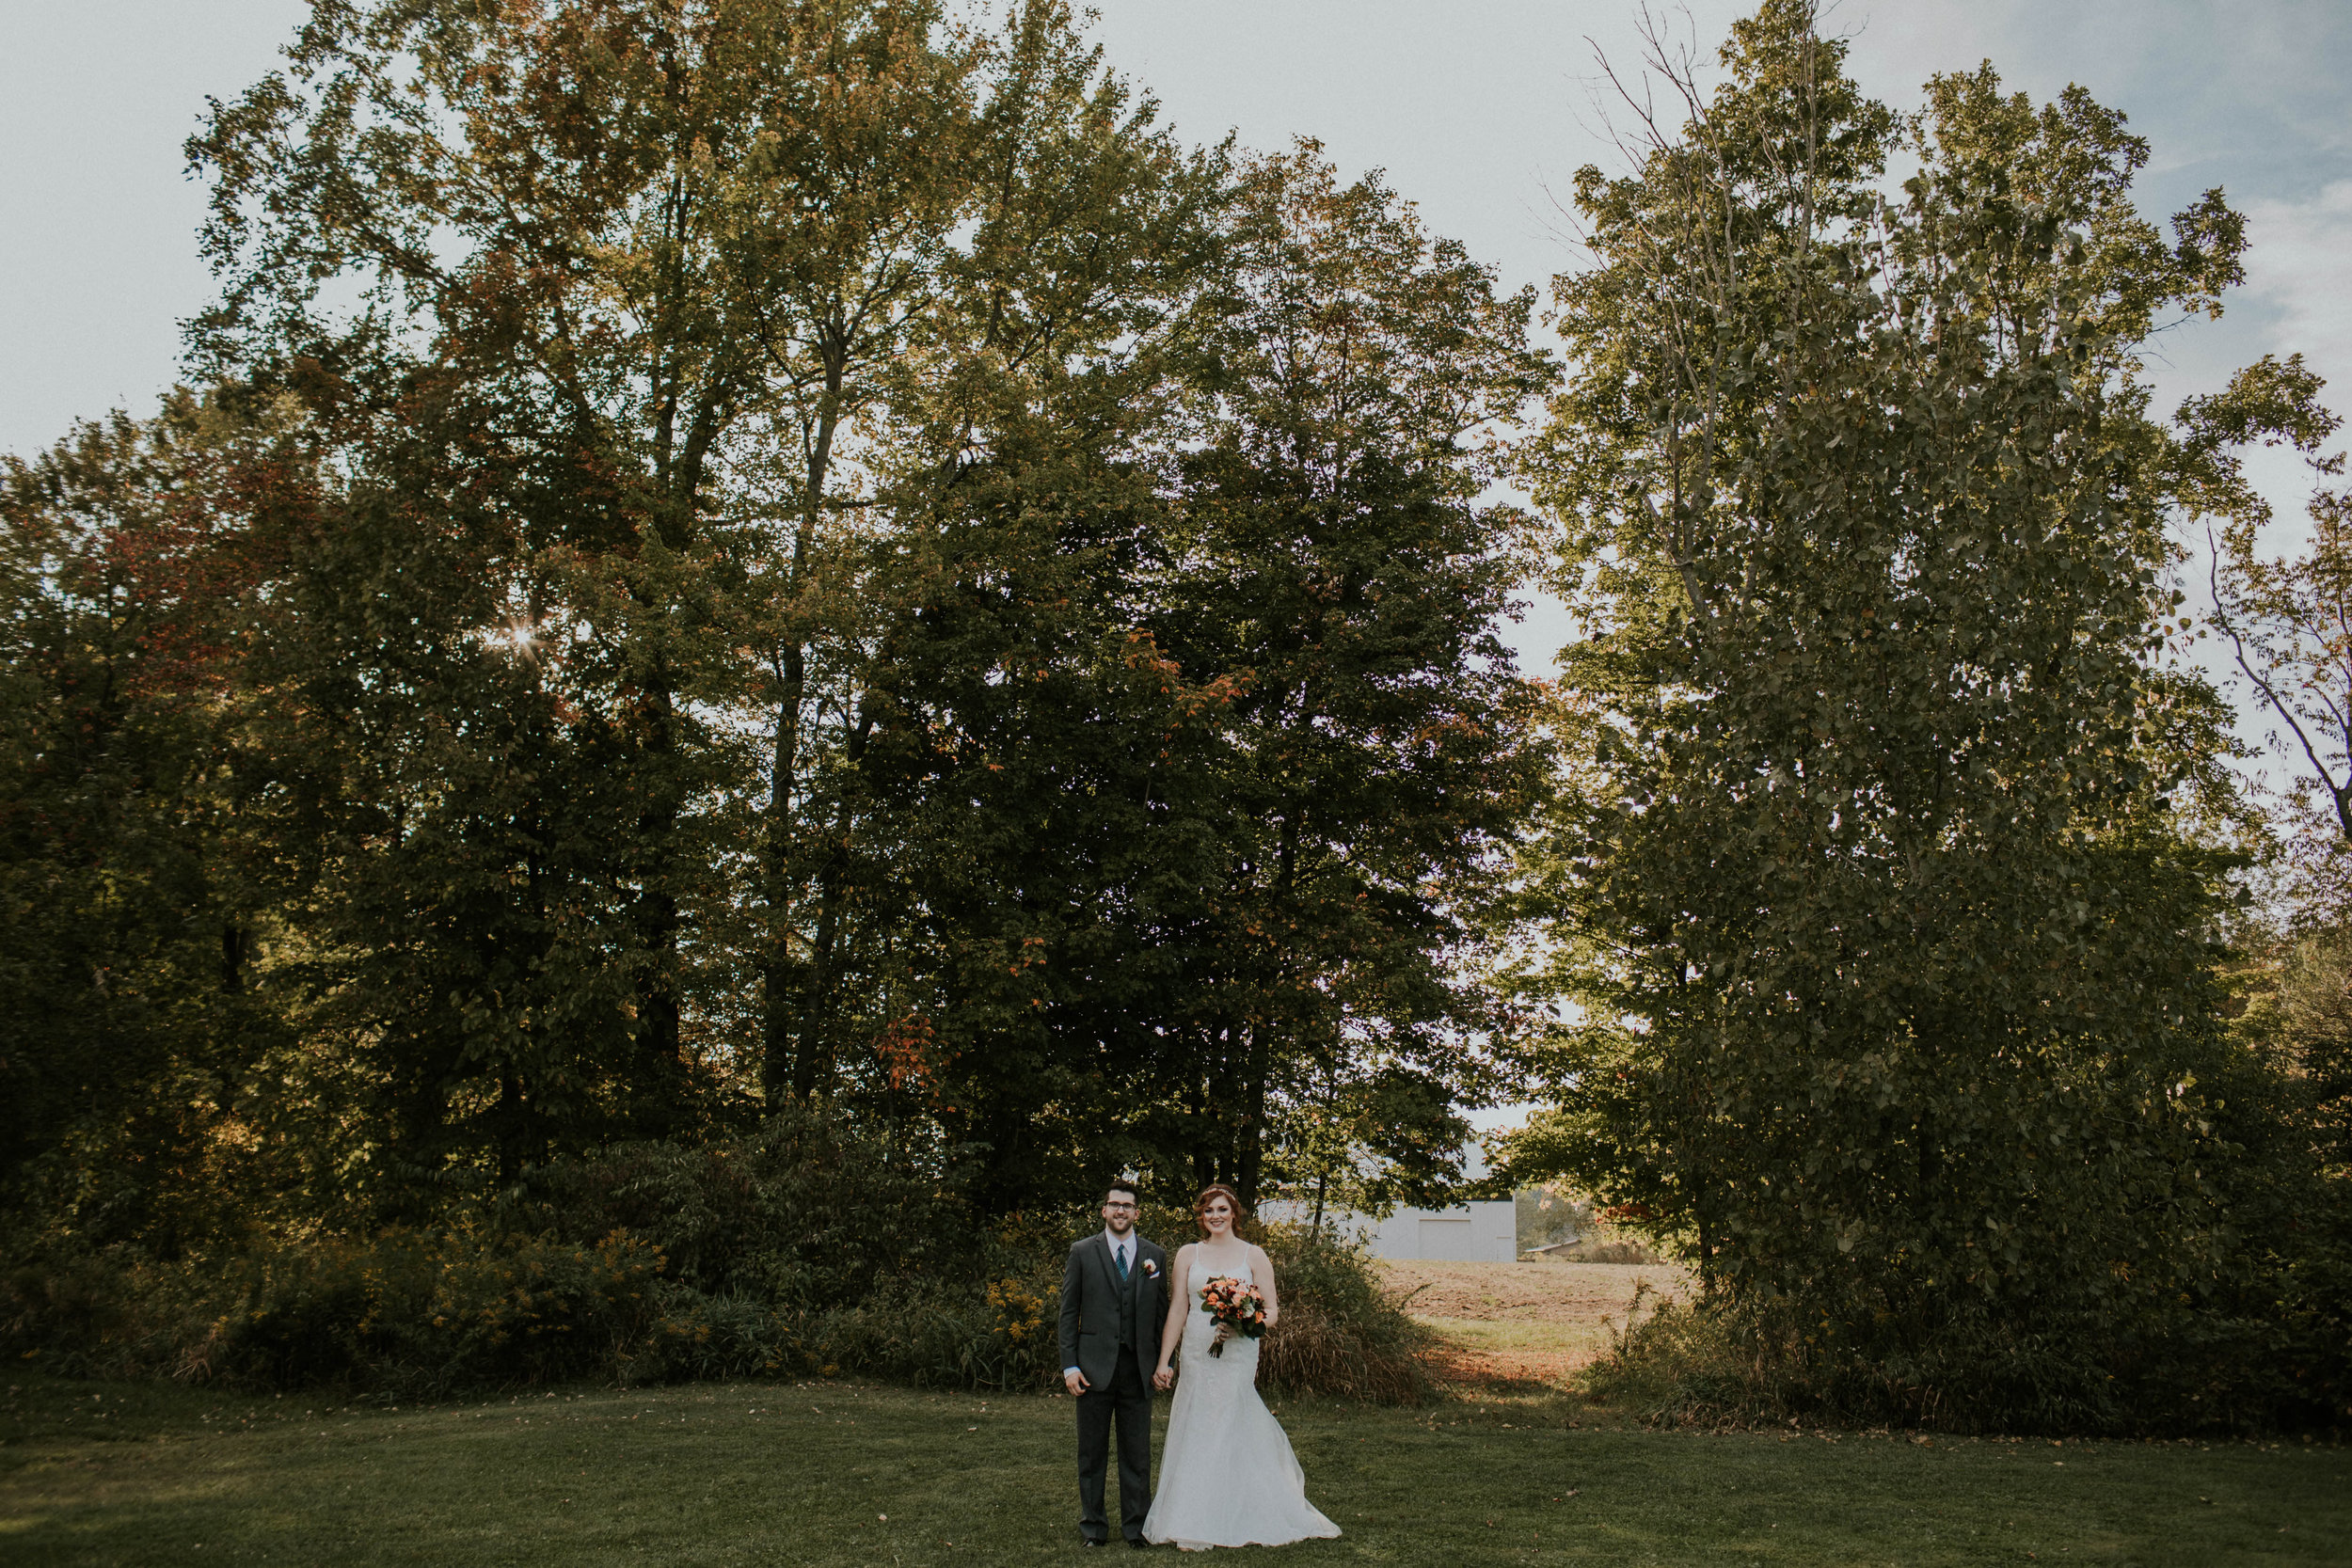 Waters edge louisville ohio romantic wedding grace e jones photography138.jpg